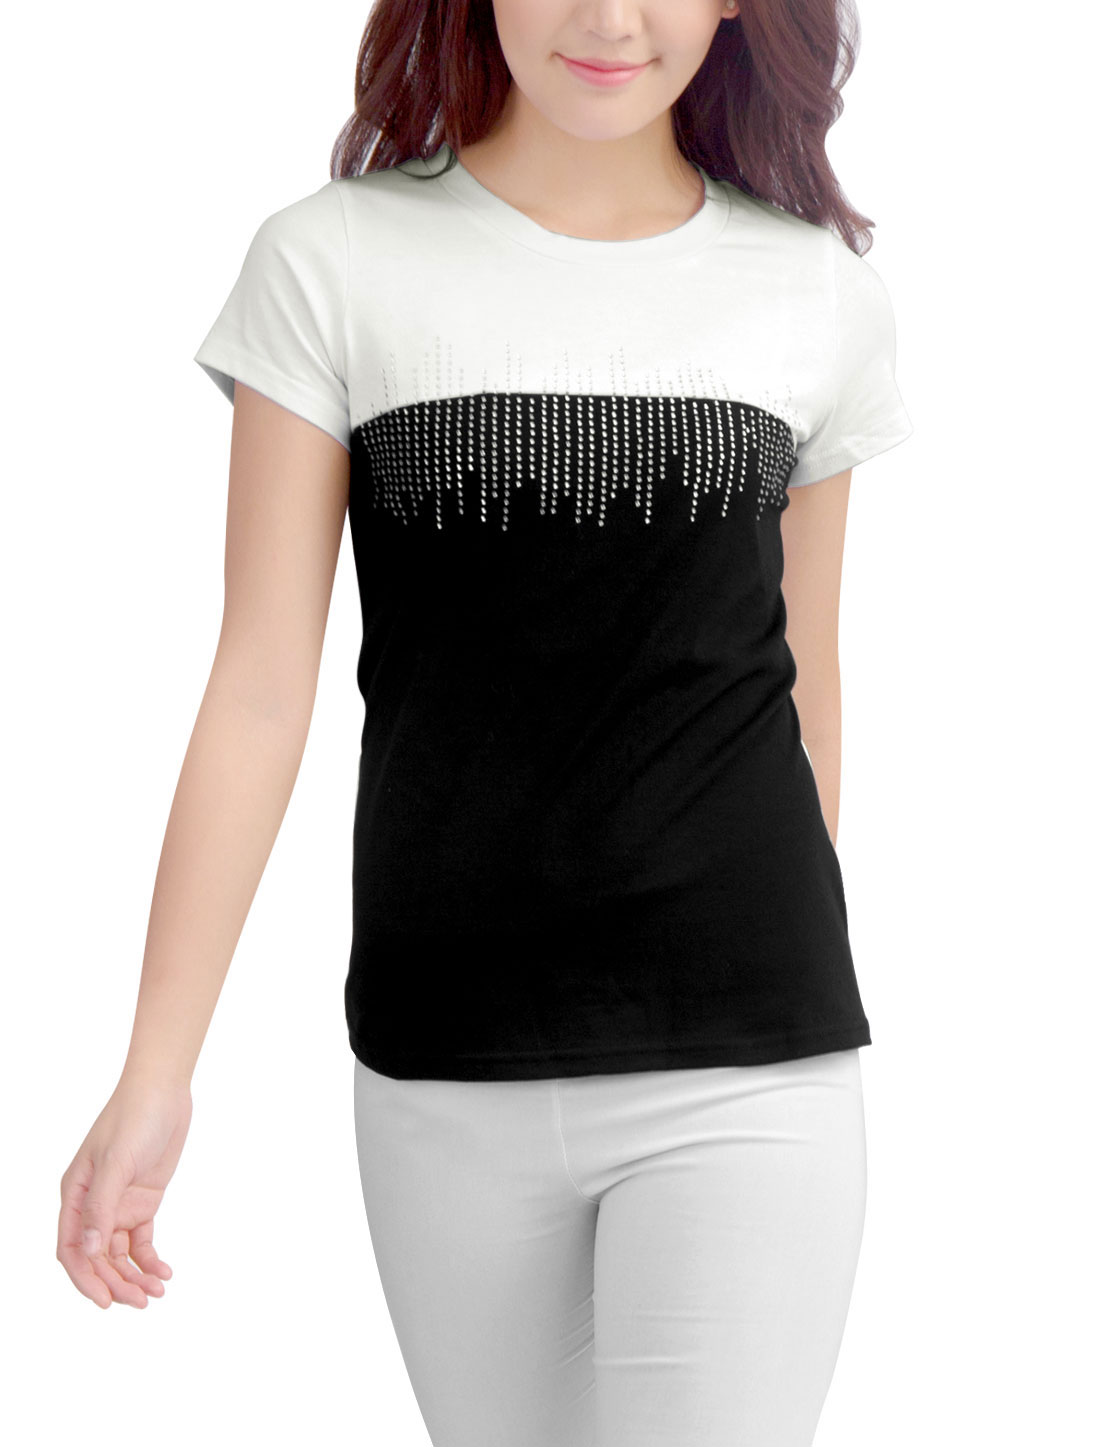 Chic Rhinestones Studded Front Black White T-Shirt for Lady L